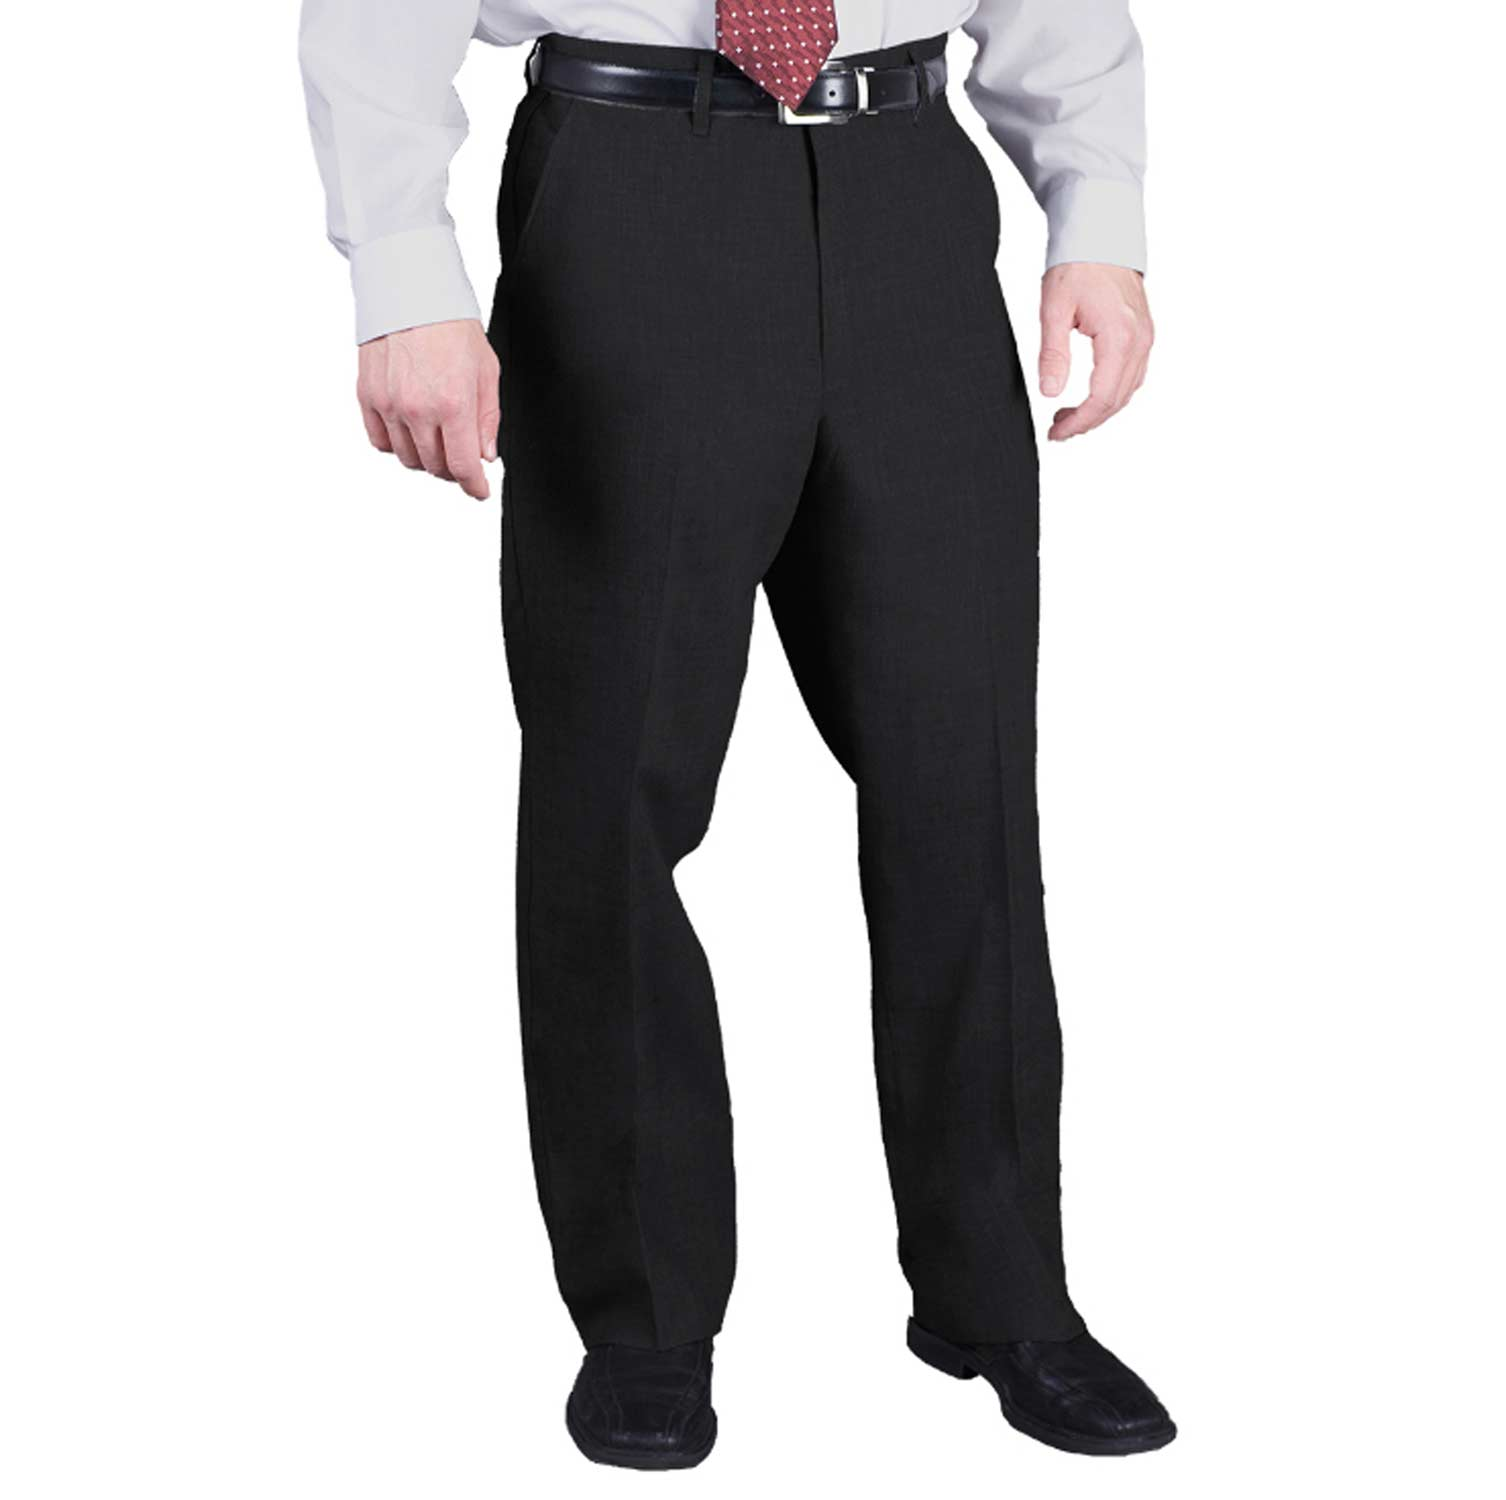 Executive Apparel Ultralux Tailored Front Comfort Stretch  P